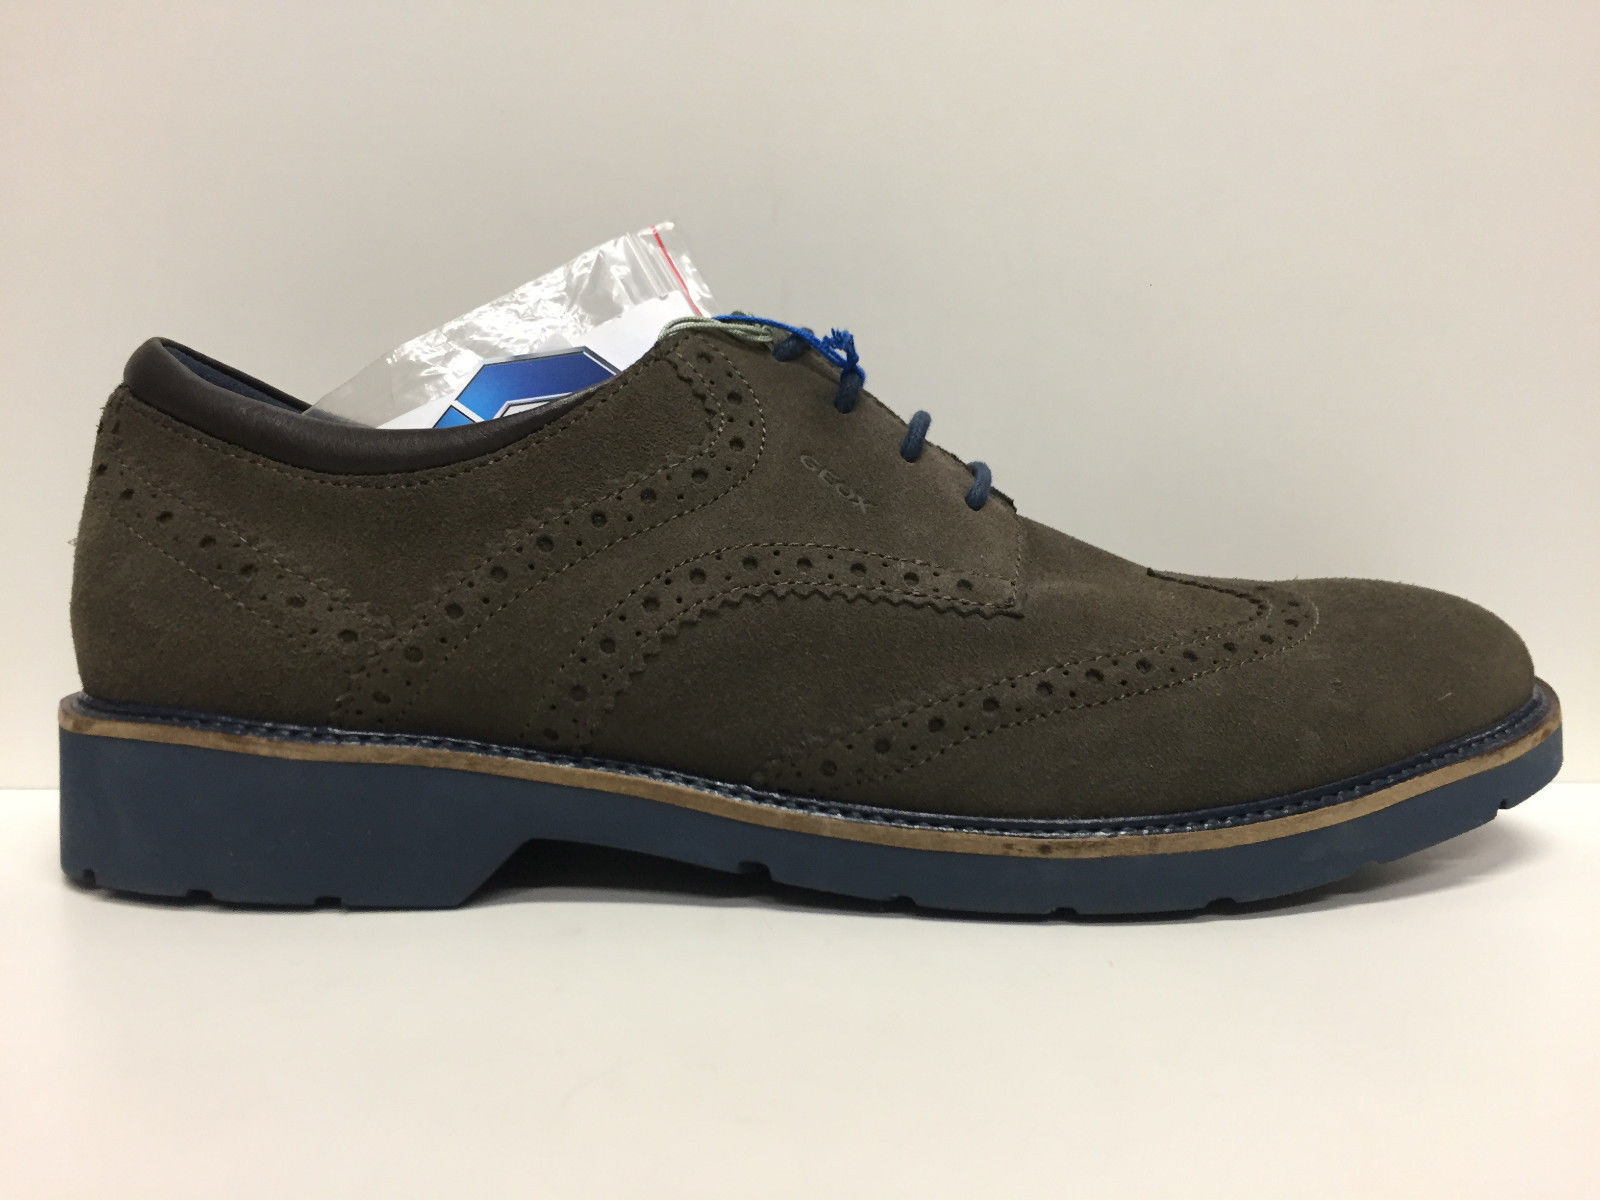 SCARPE INGLESINA UOMO GEOX ORIGINAL GARRETT U54L9A PELLE CAMPIONE SHOES LEATHER